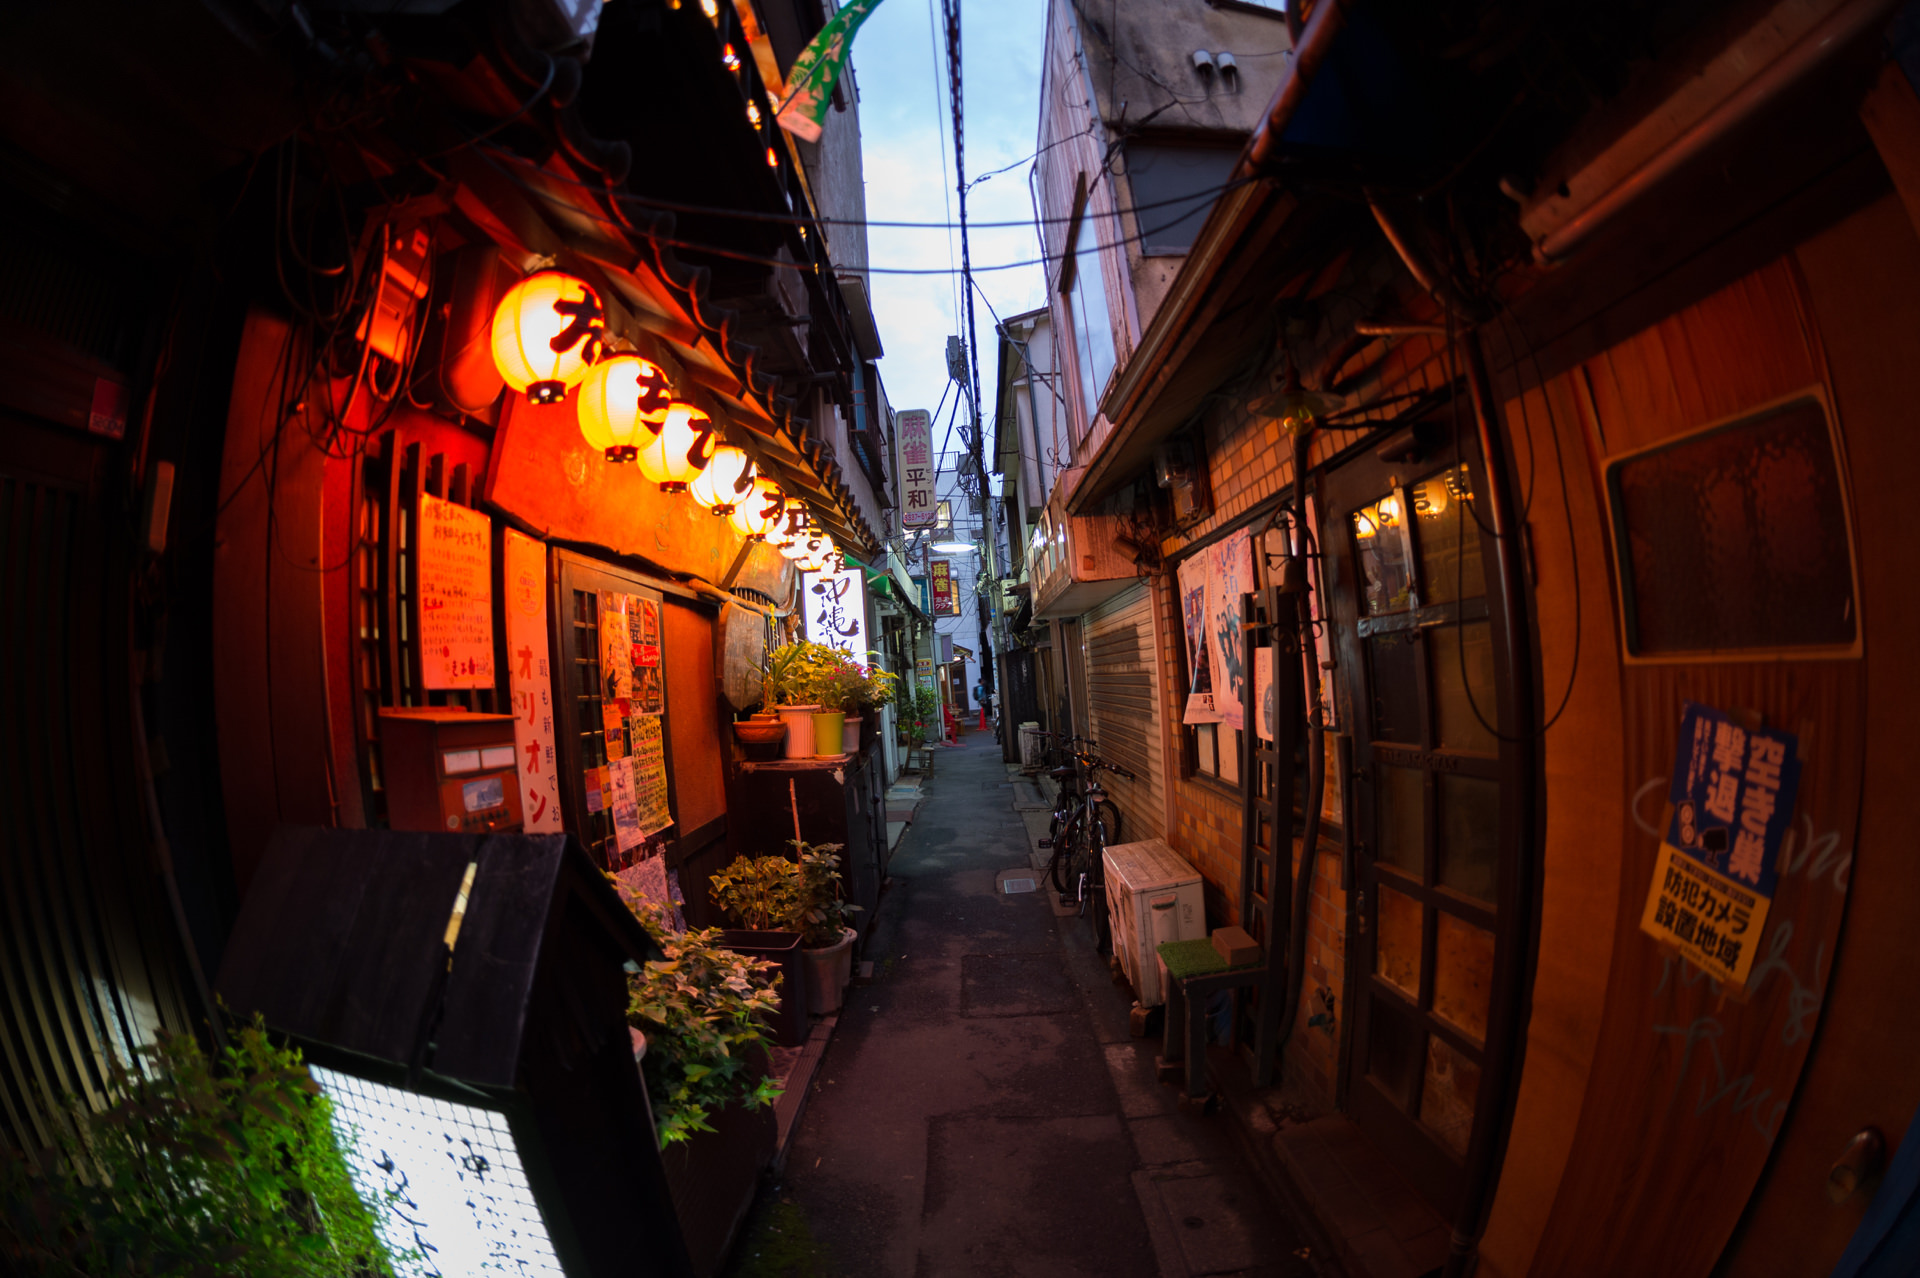 Fisheye-Nikkor 16mm f/2.8D